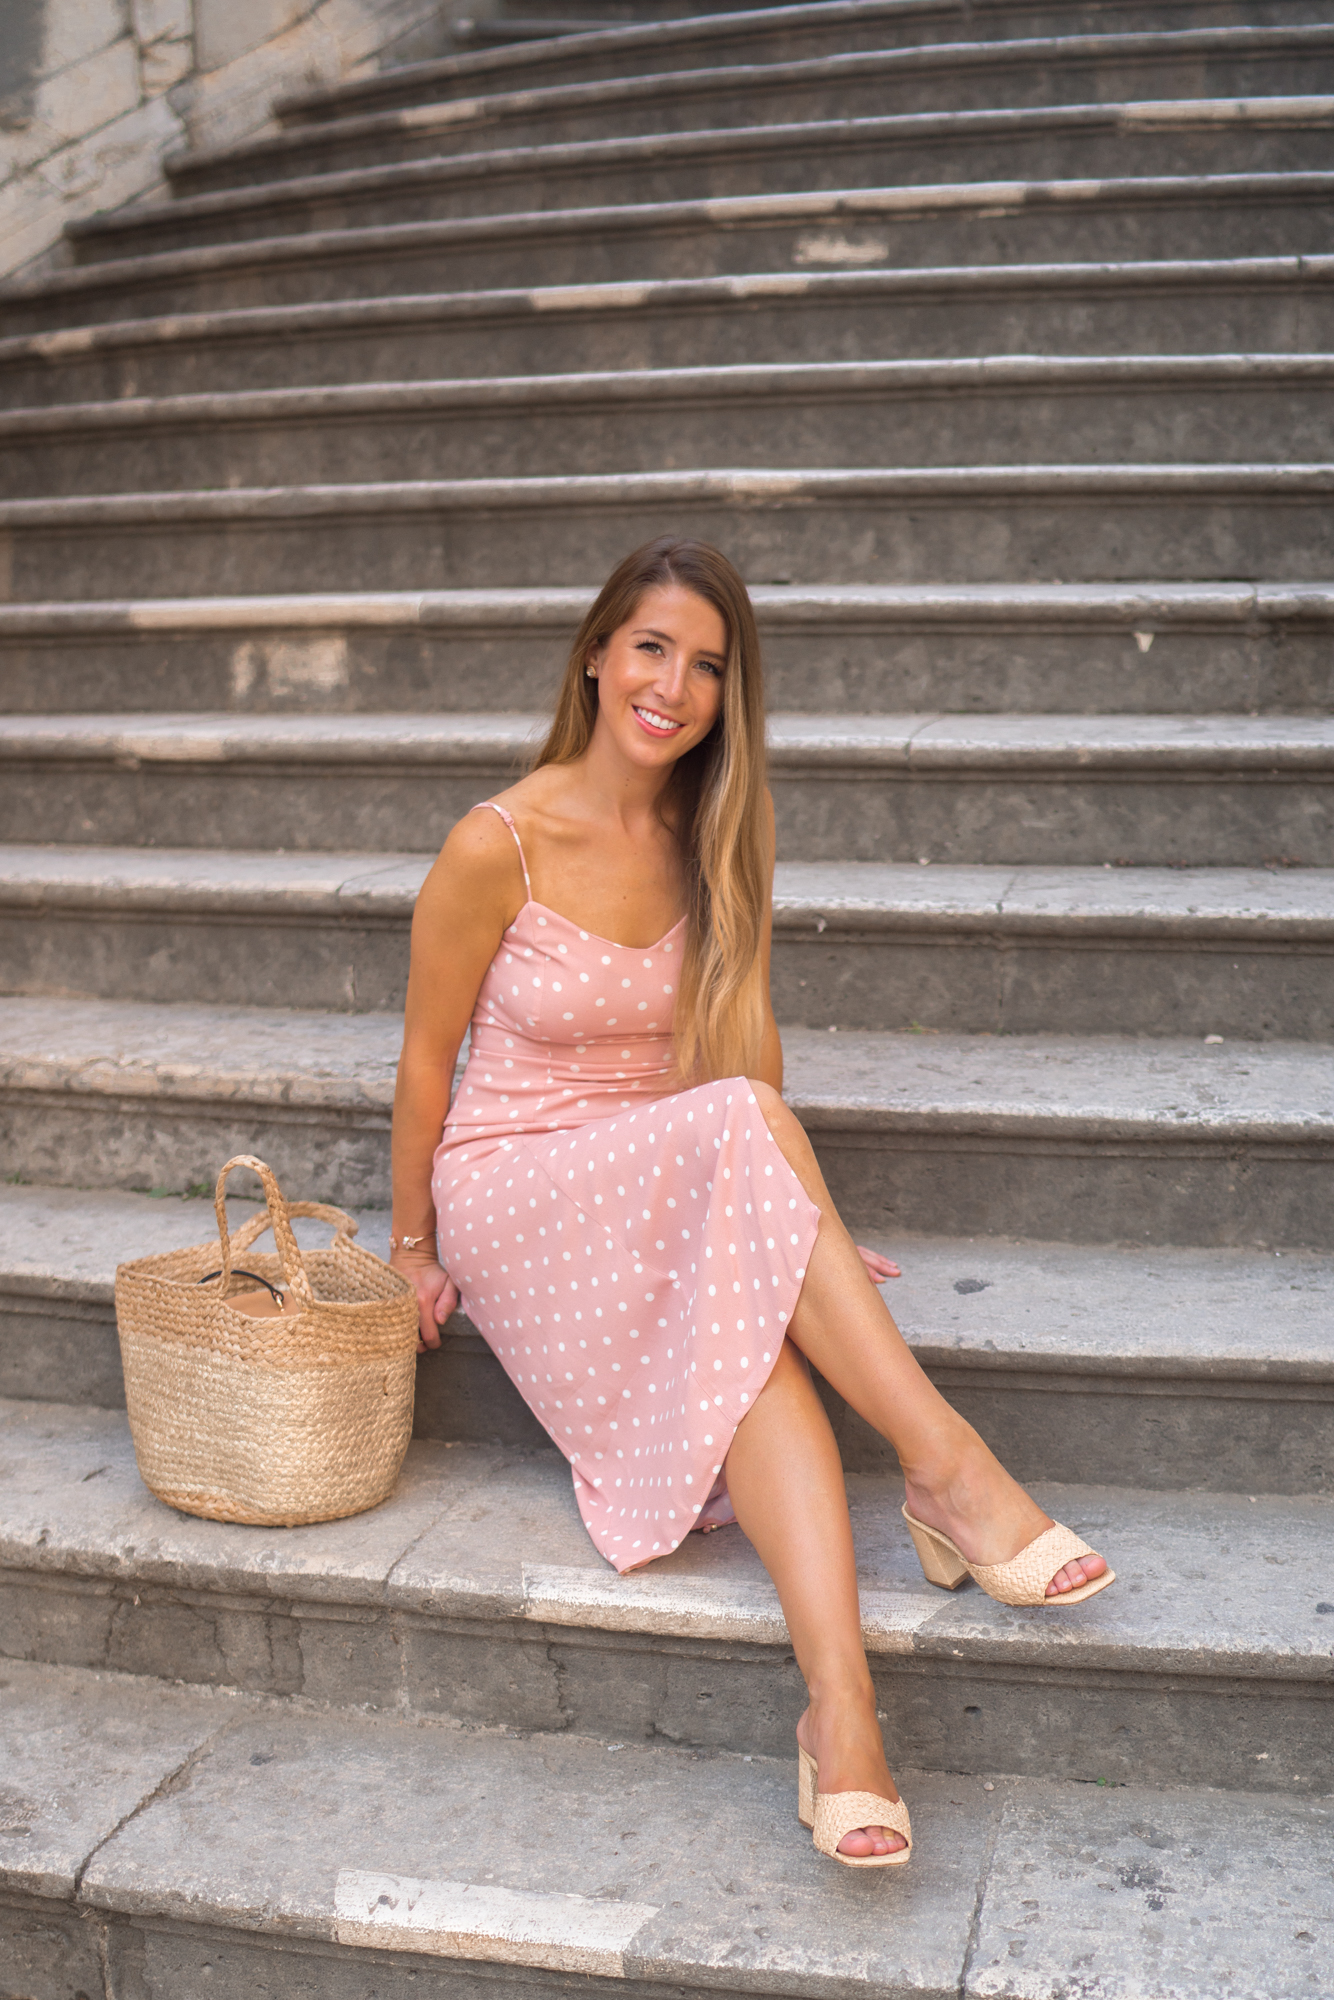 AFRM Pink Polka Dot Dress